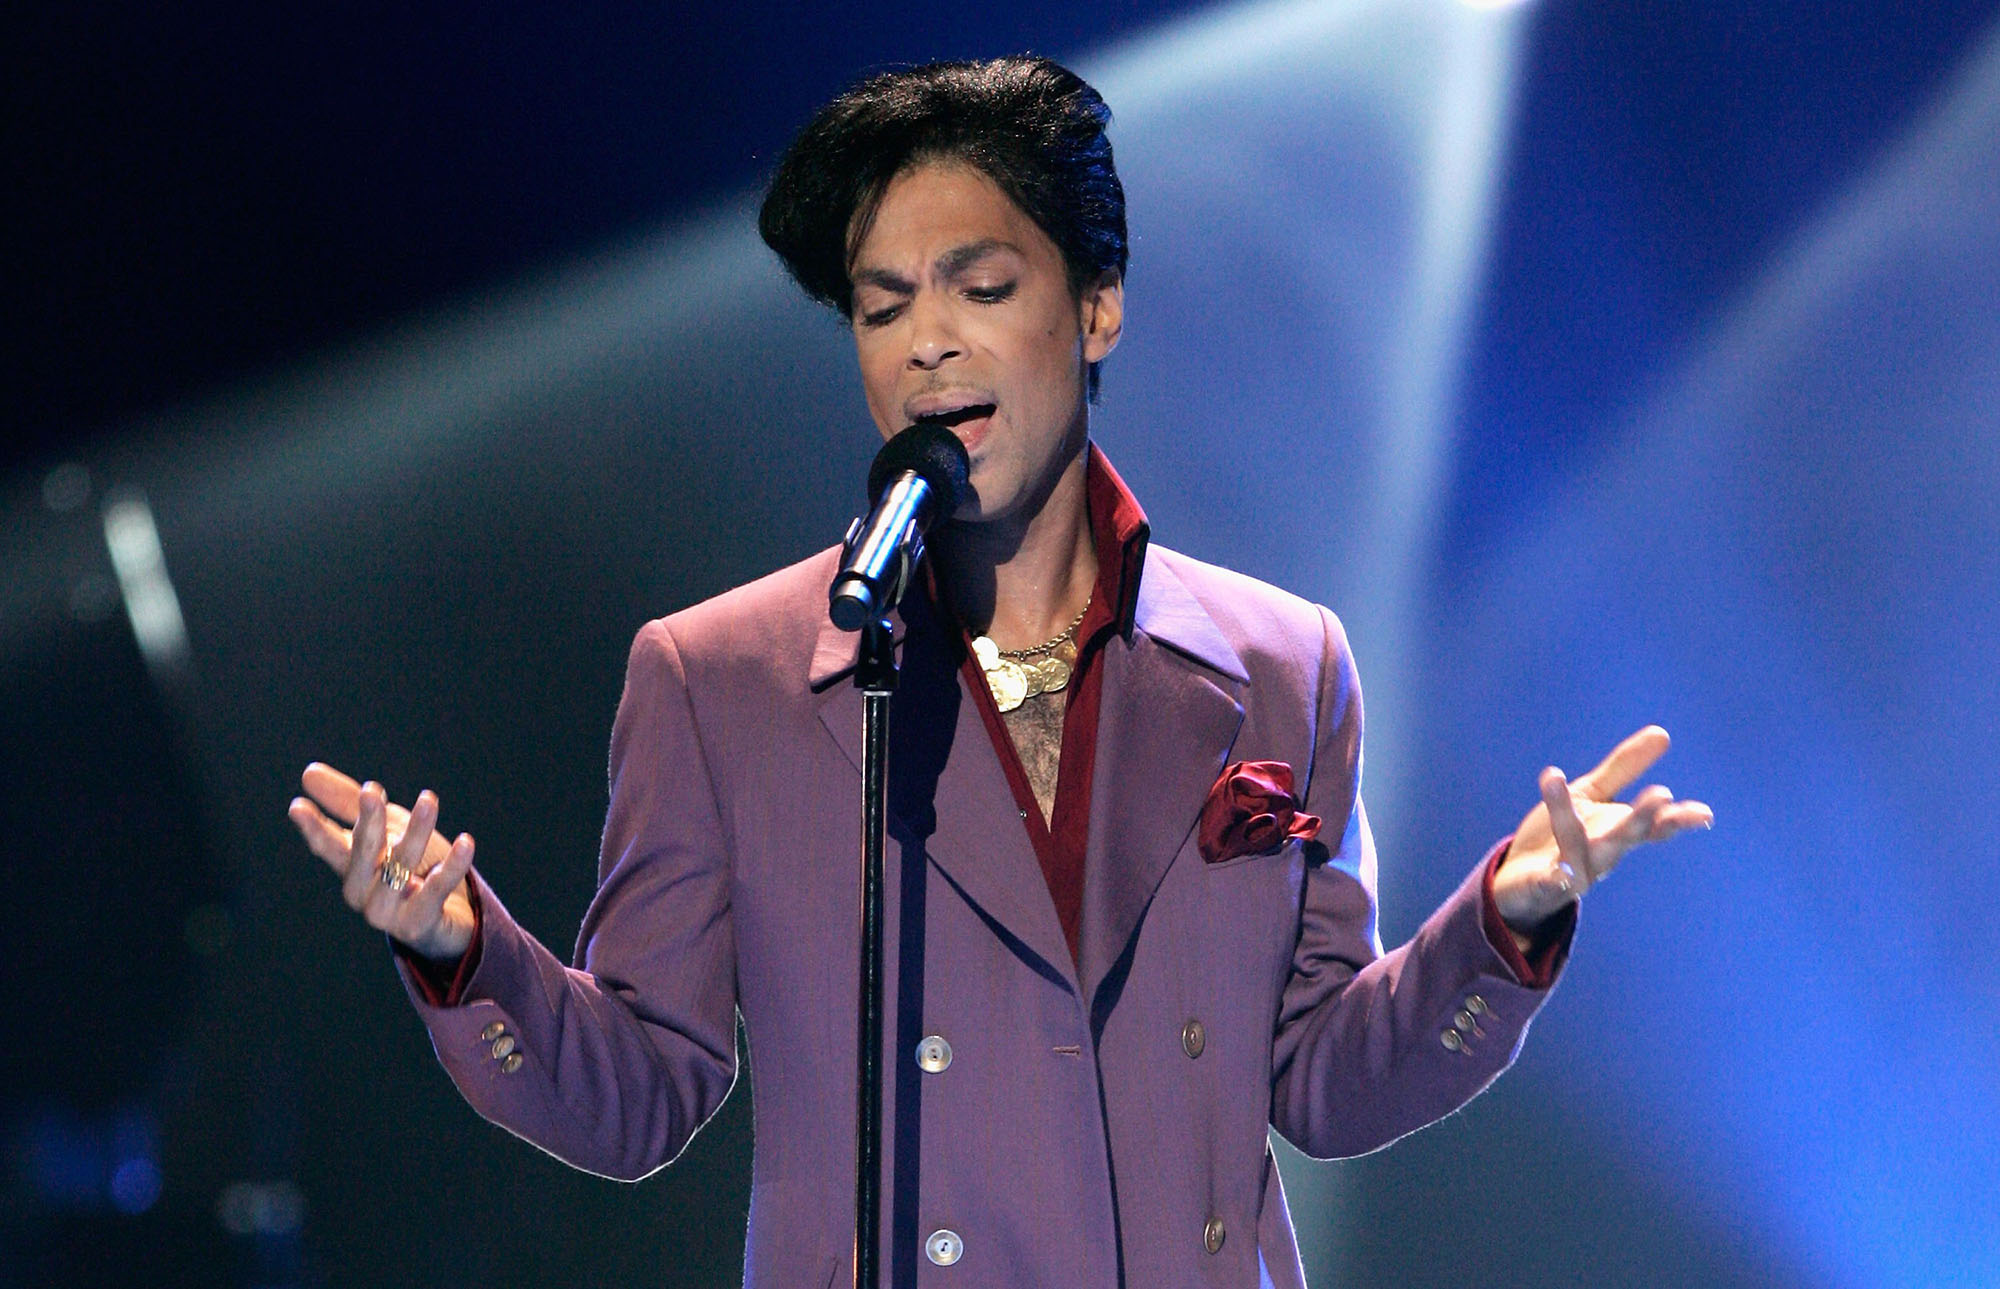 Prince performs onstage during the American Idol Season 5 Finale on May 24, 2006 at the Kodak Theatre in Hollywood, California.  (Photo by Vince Bucci/Getty Images)